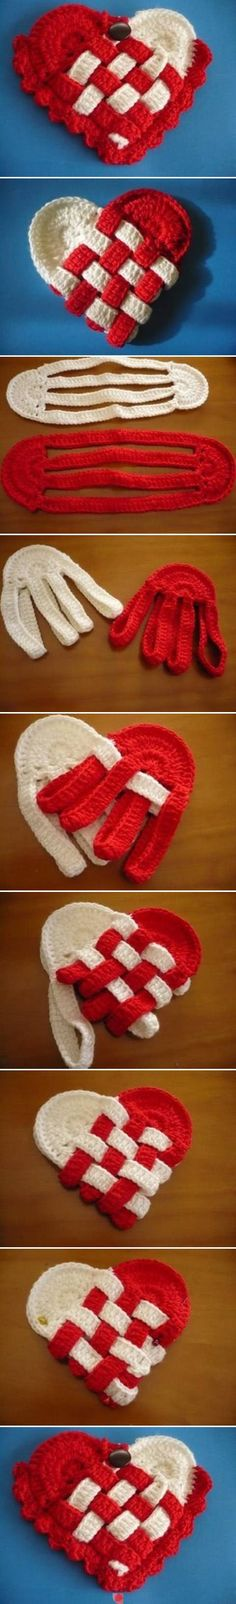 crochet Danish heart baskets